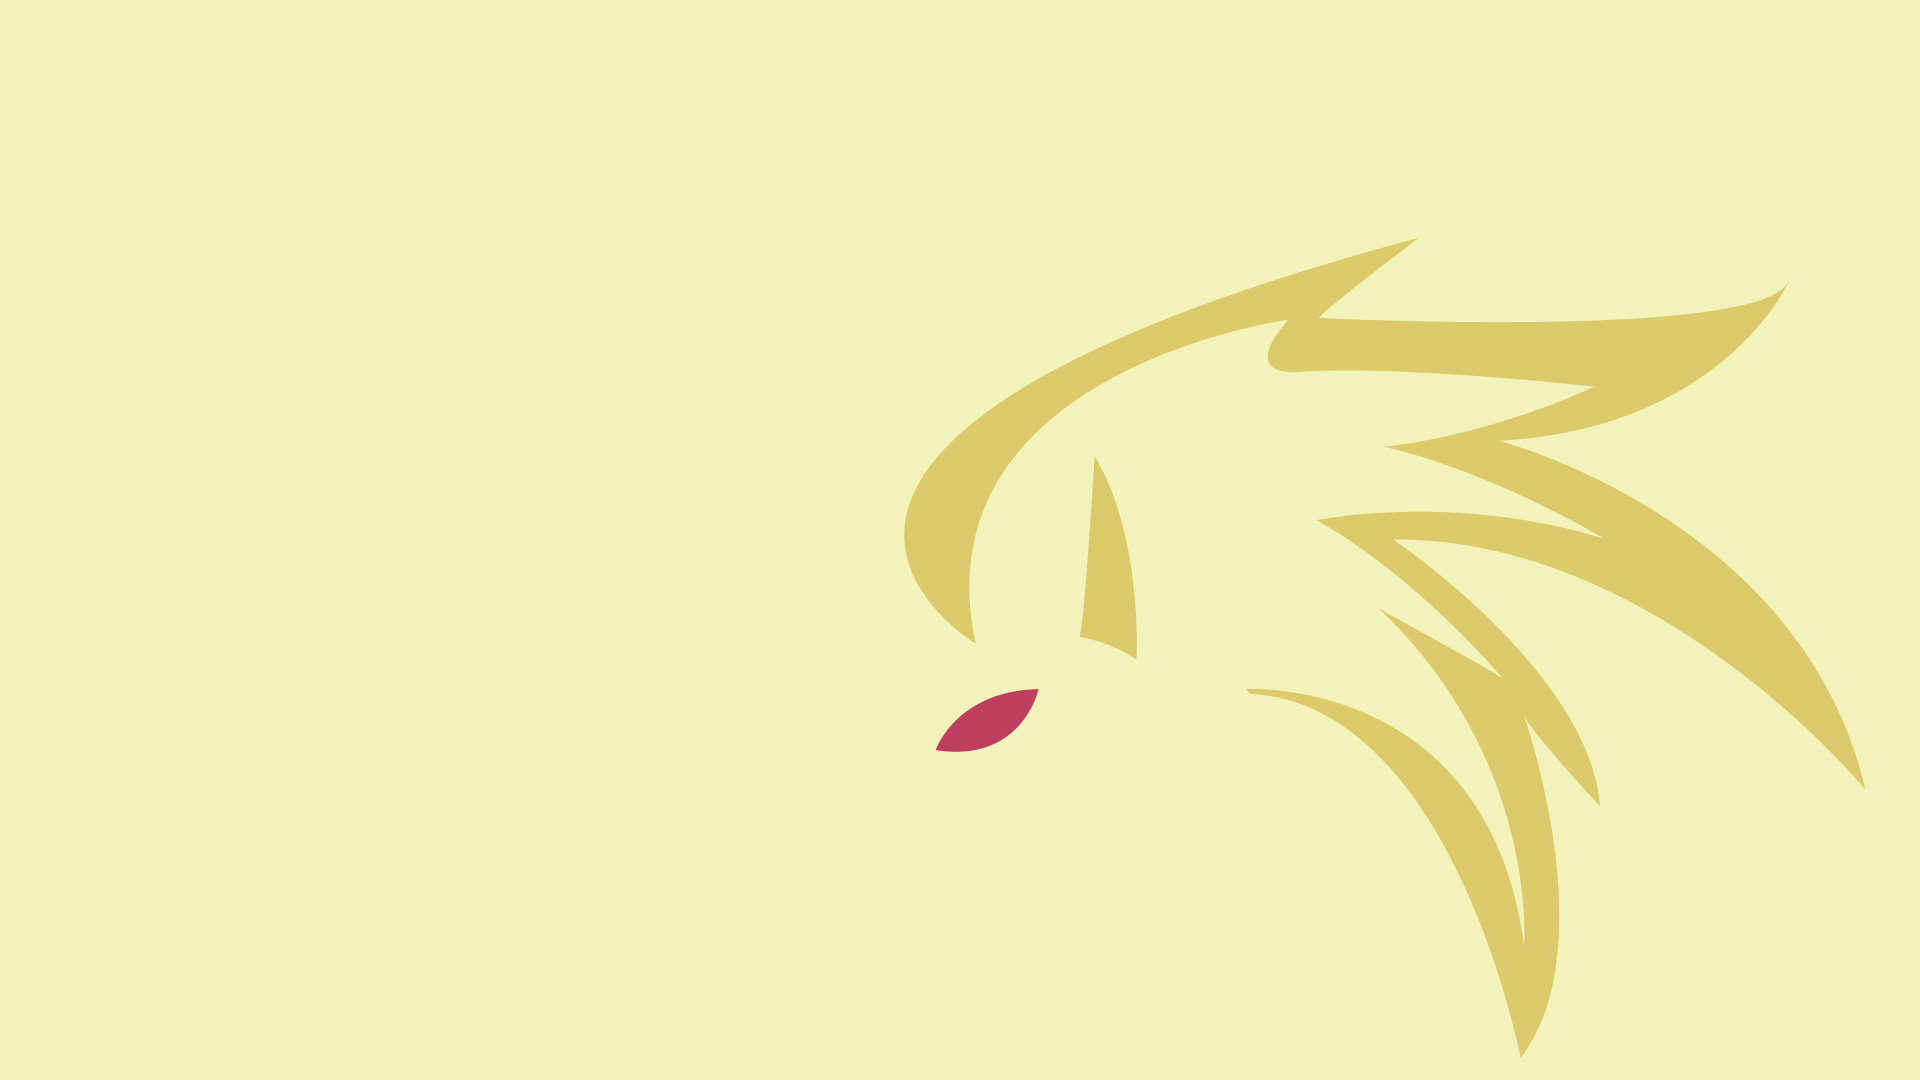 038 Ninetales Art Sprites Amp Wallpapers Spritedex Pok 233 Dex Pldh Net